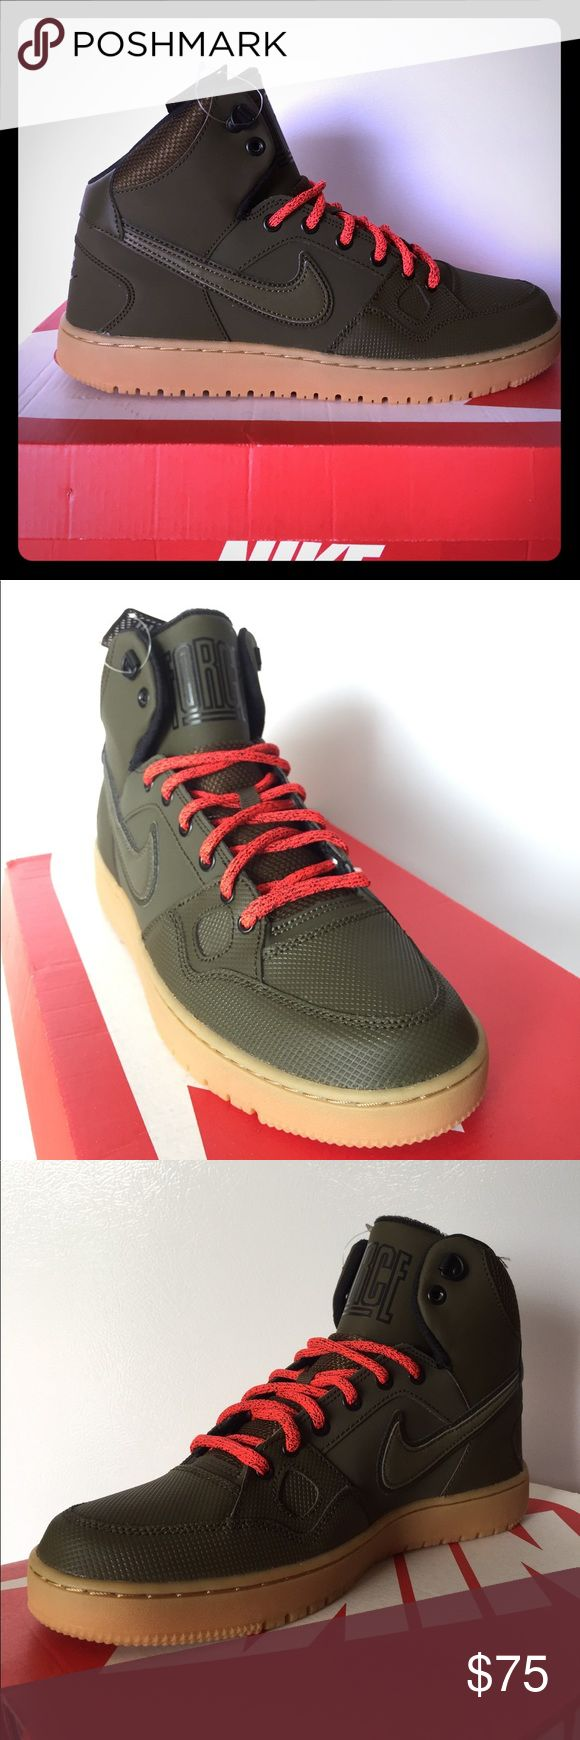 BRAND NEW Nike Son Of Force Mid!!! Check out these RADICAL Nike Son Of Force Winter Mids!!! This stylish Nike features a non-slip gum sole, water resistant upper, reflective accents throughout and SUPER COMFORTABLE Lunarlon insoles!!! Olive/Black/Gum/Orange Speckle Laces!!! DONT MISS OUT!!! Nike Shoes Athletic Shoes